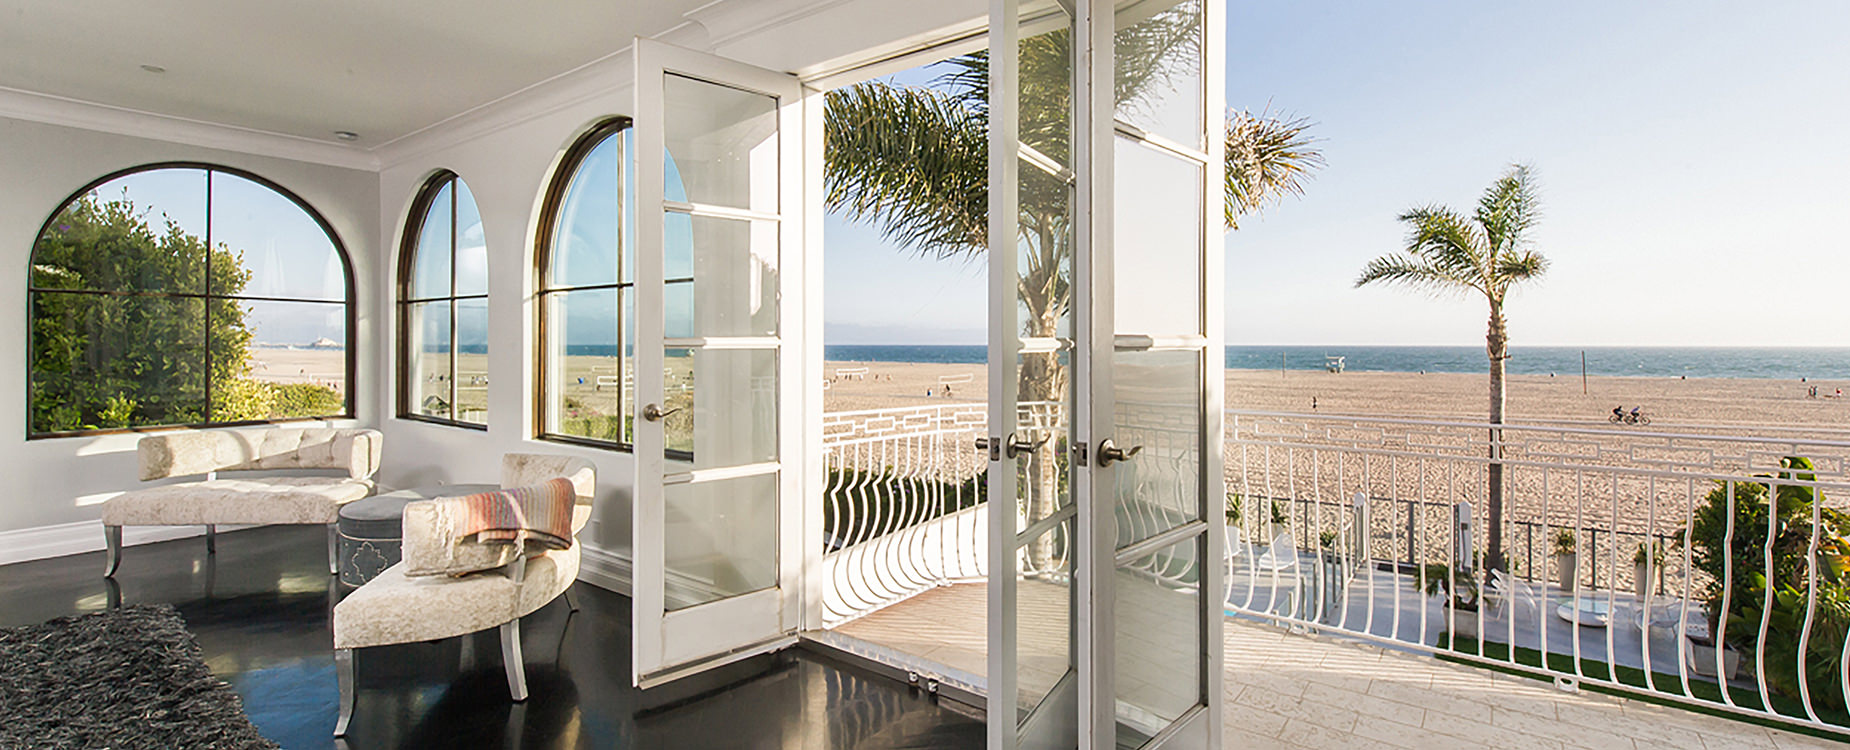 Welcome To Passages Santa Monica Luxury Sober Living